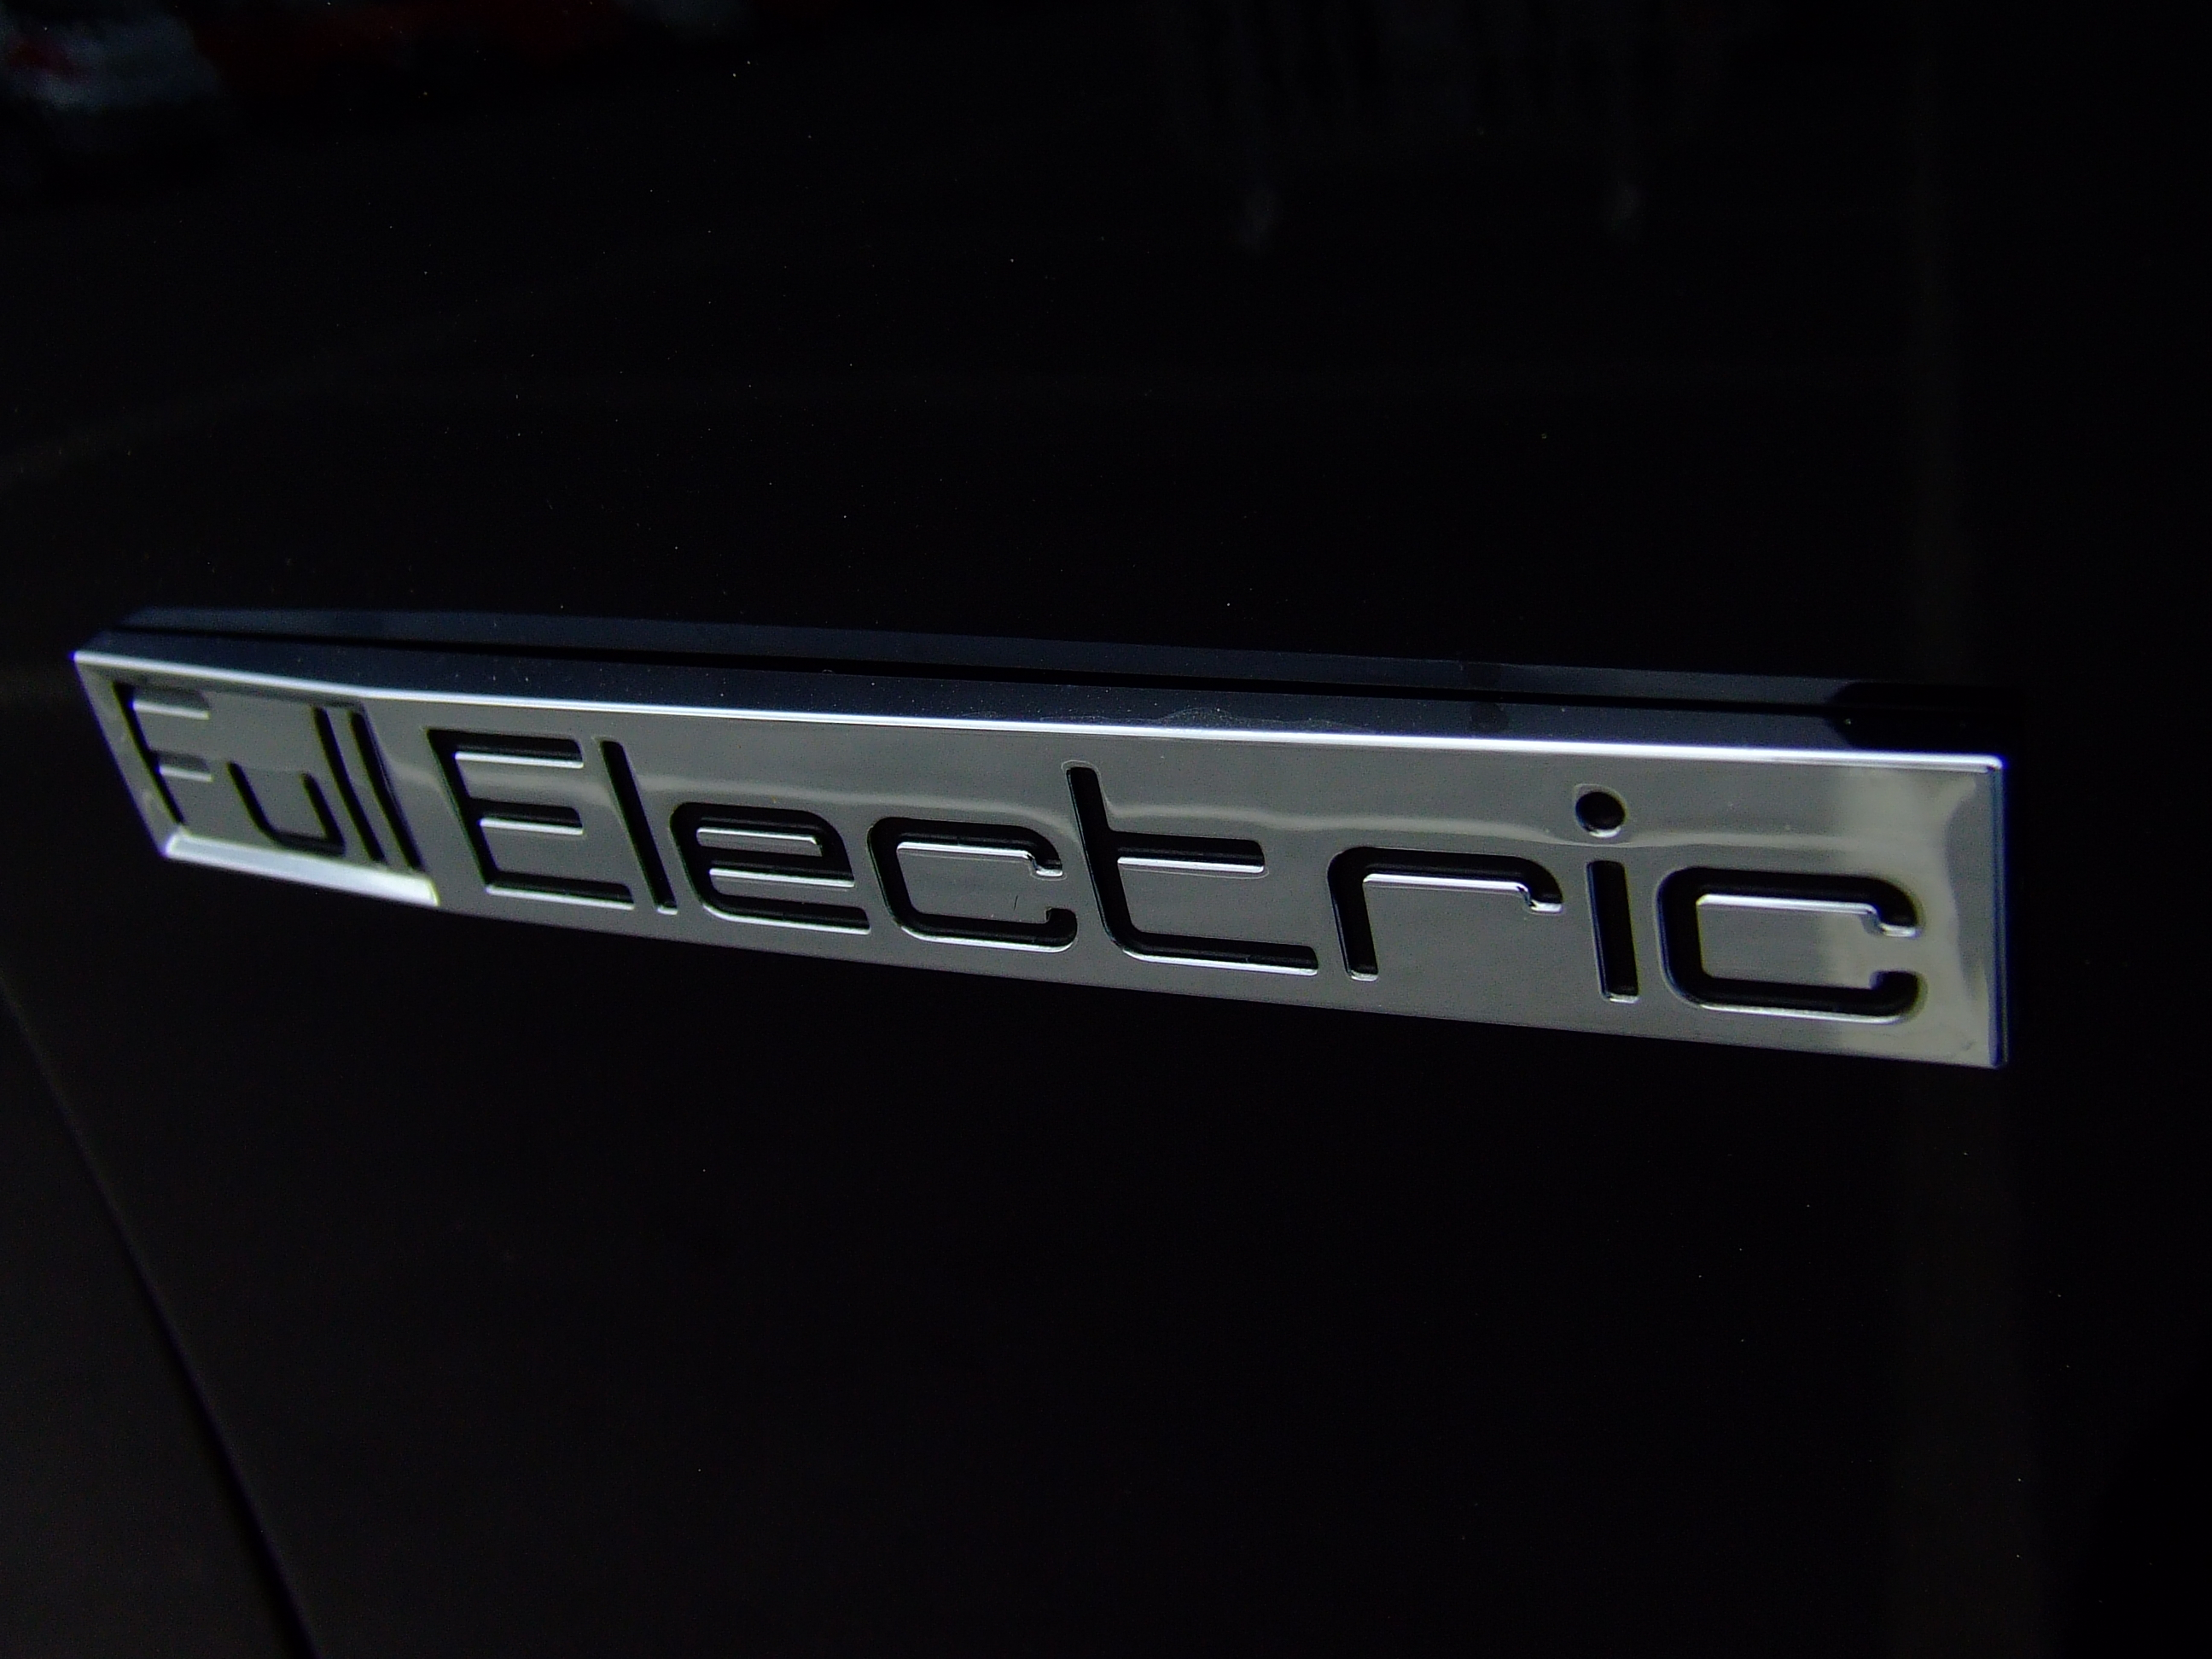 Full Electric - the Future of Racing